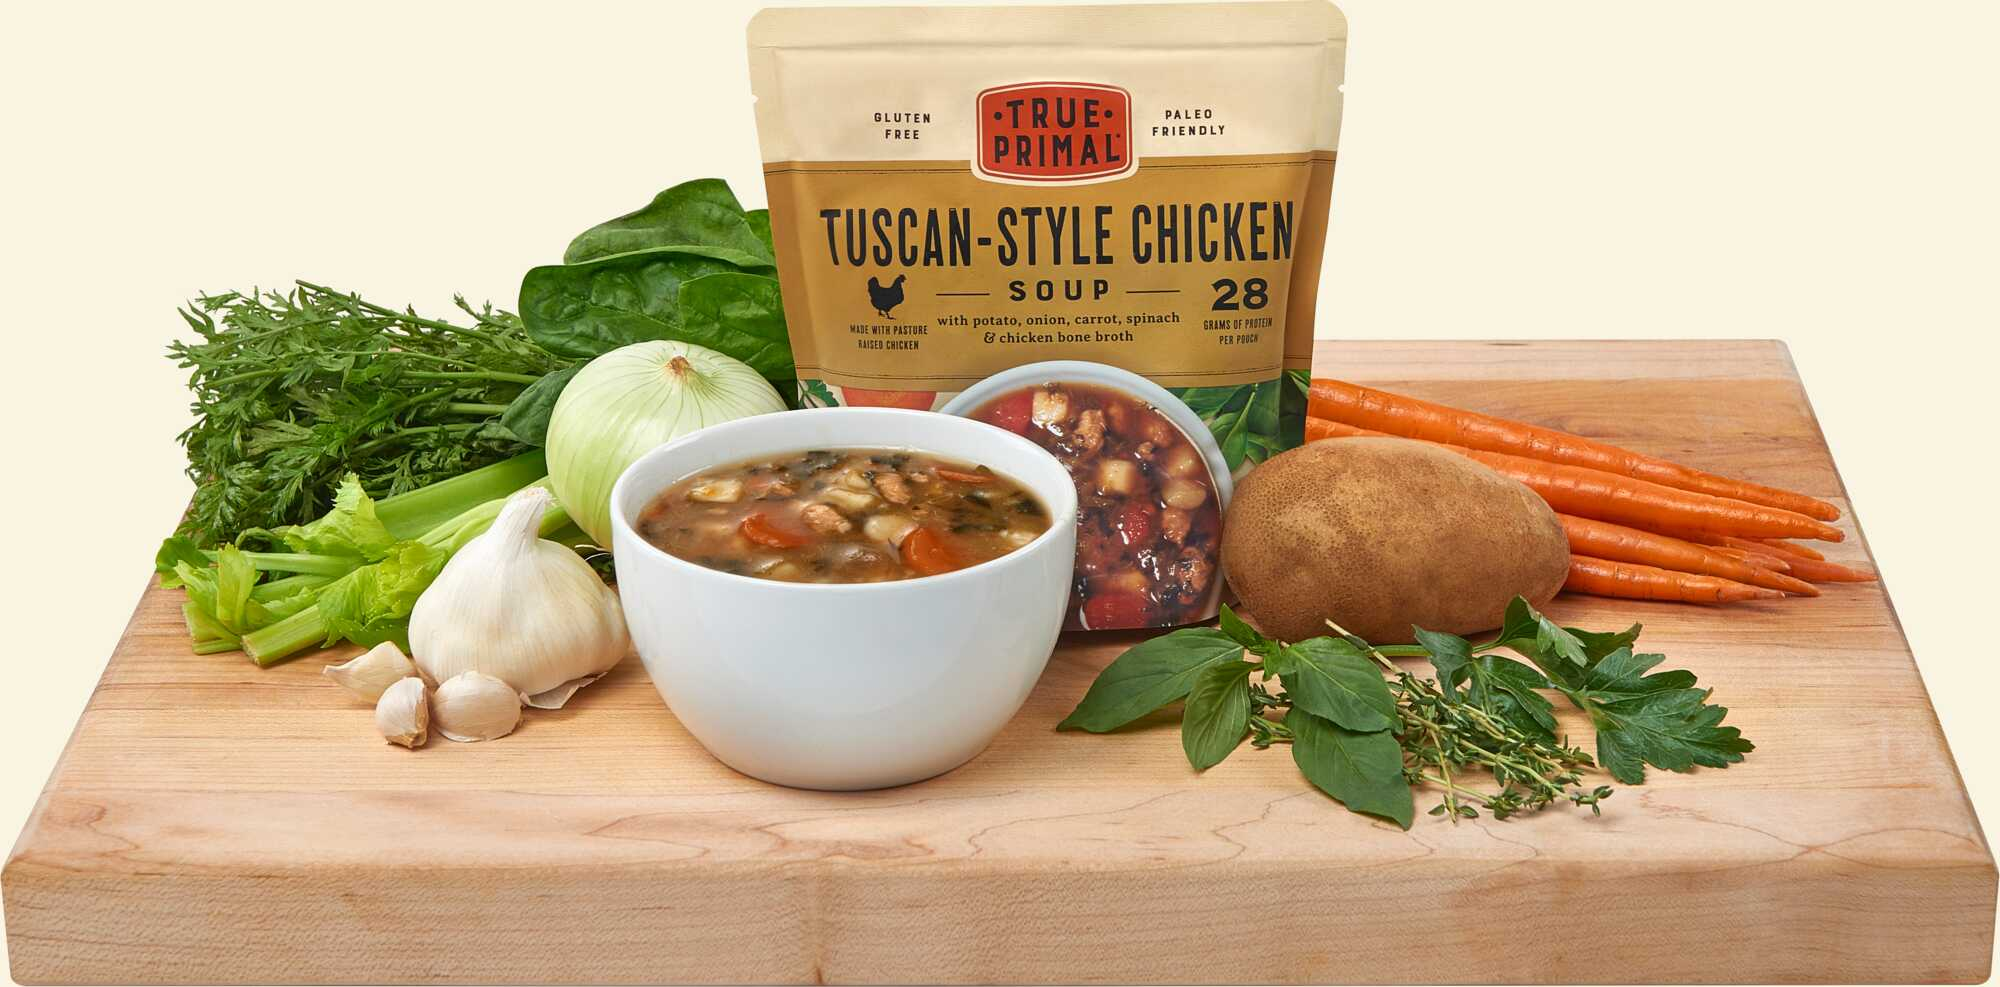 True Primal Tuscan-Style Chicken Soup on cutting board with ingredients